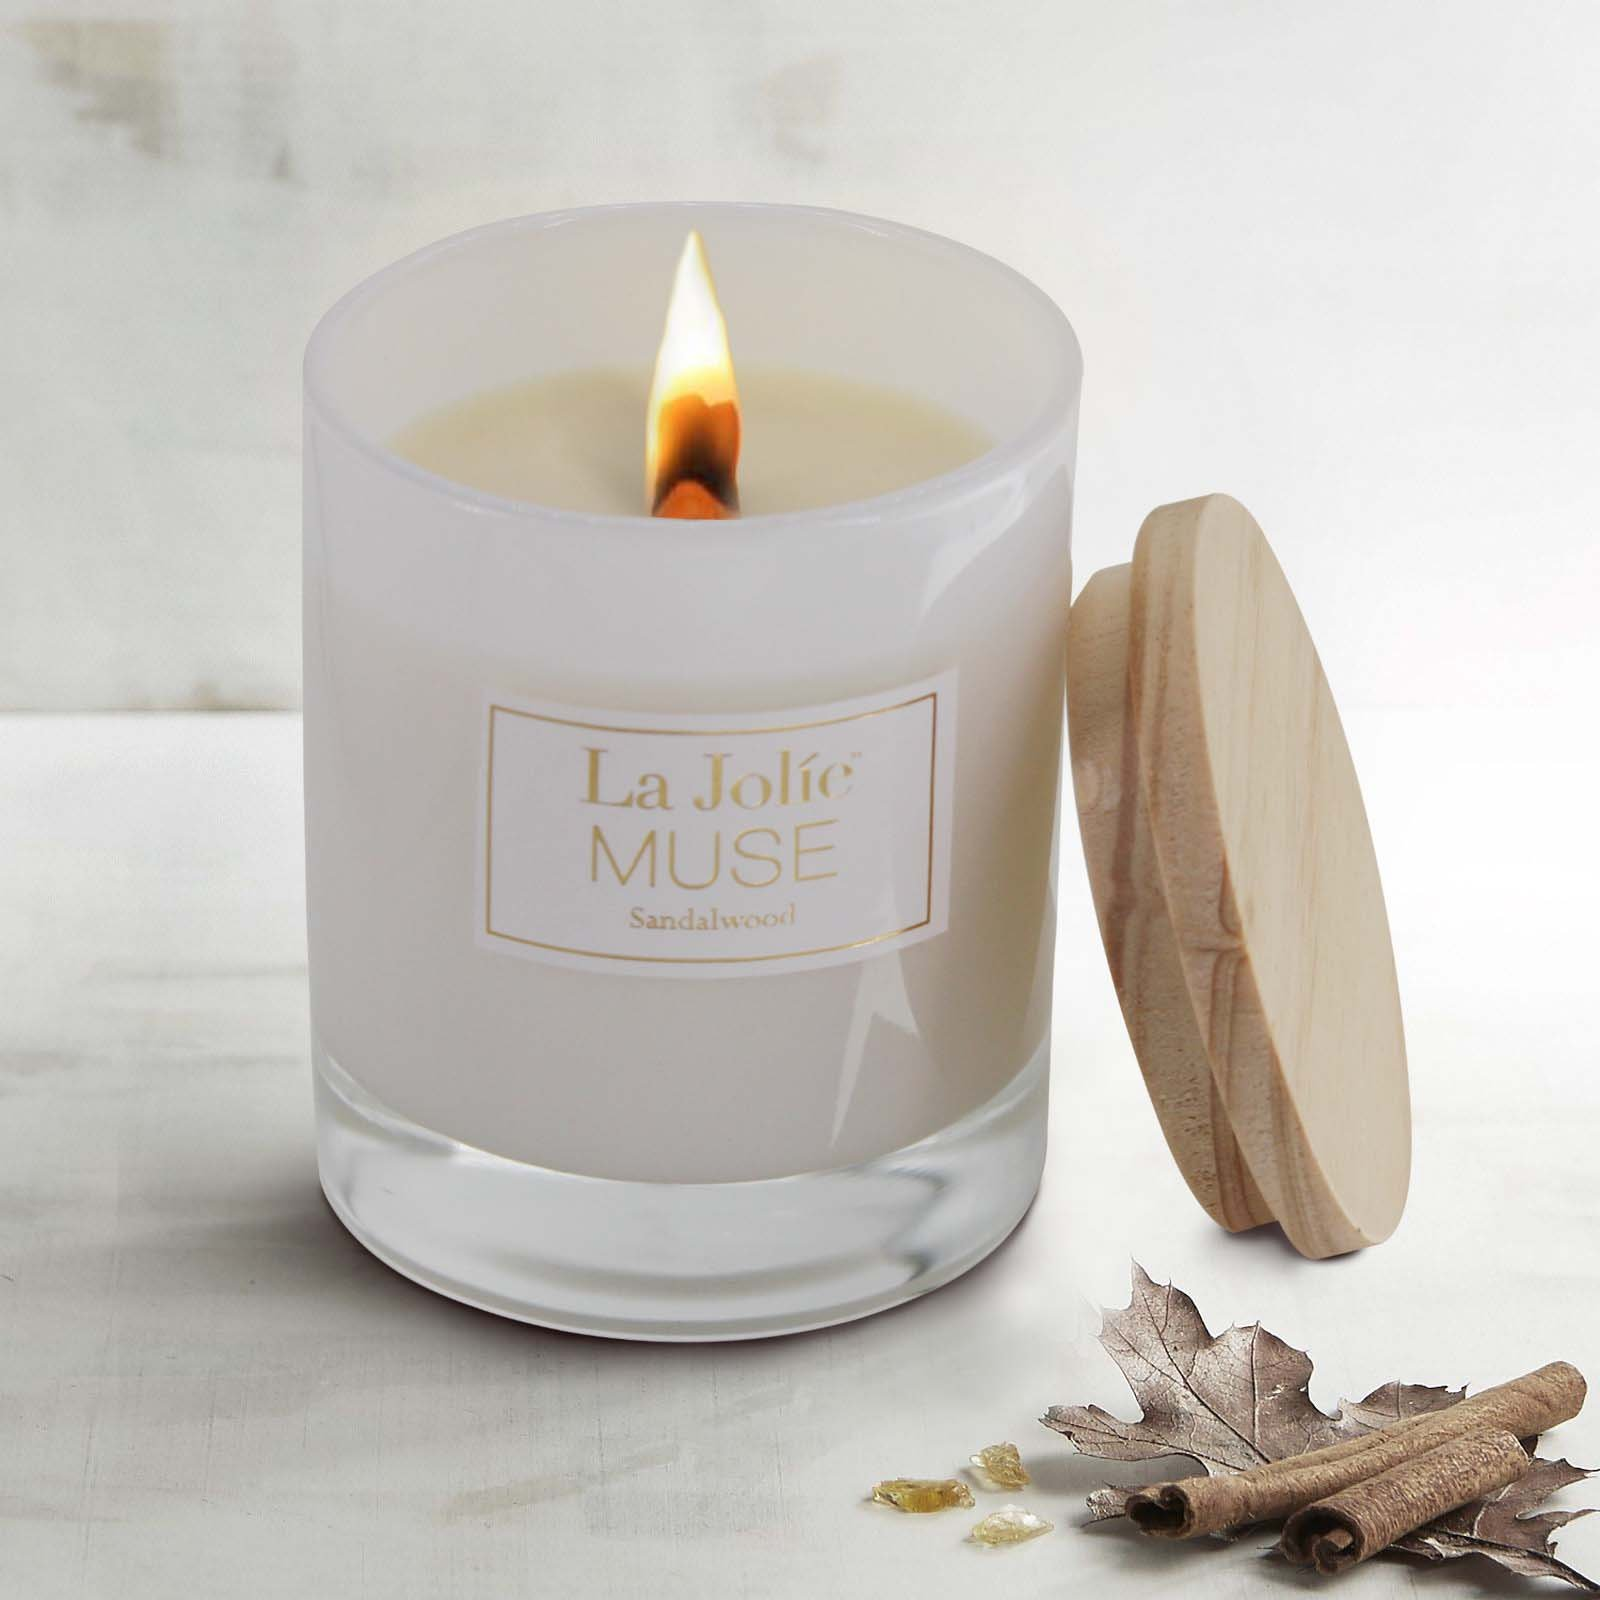 LA JOLIE MUSE Wood Wick Soy Candles Sandalwood Scented Glass Jar Candle, 45 Hours Burning, Gift by LA JOLIE MUSE (Image #3)